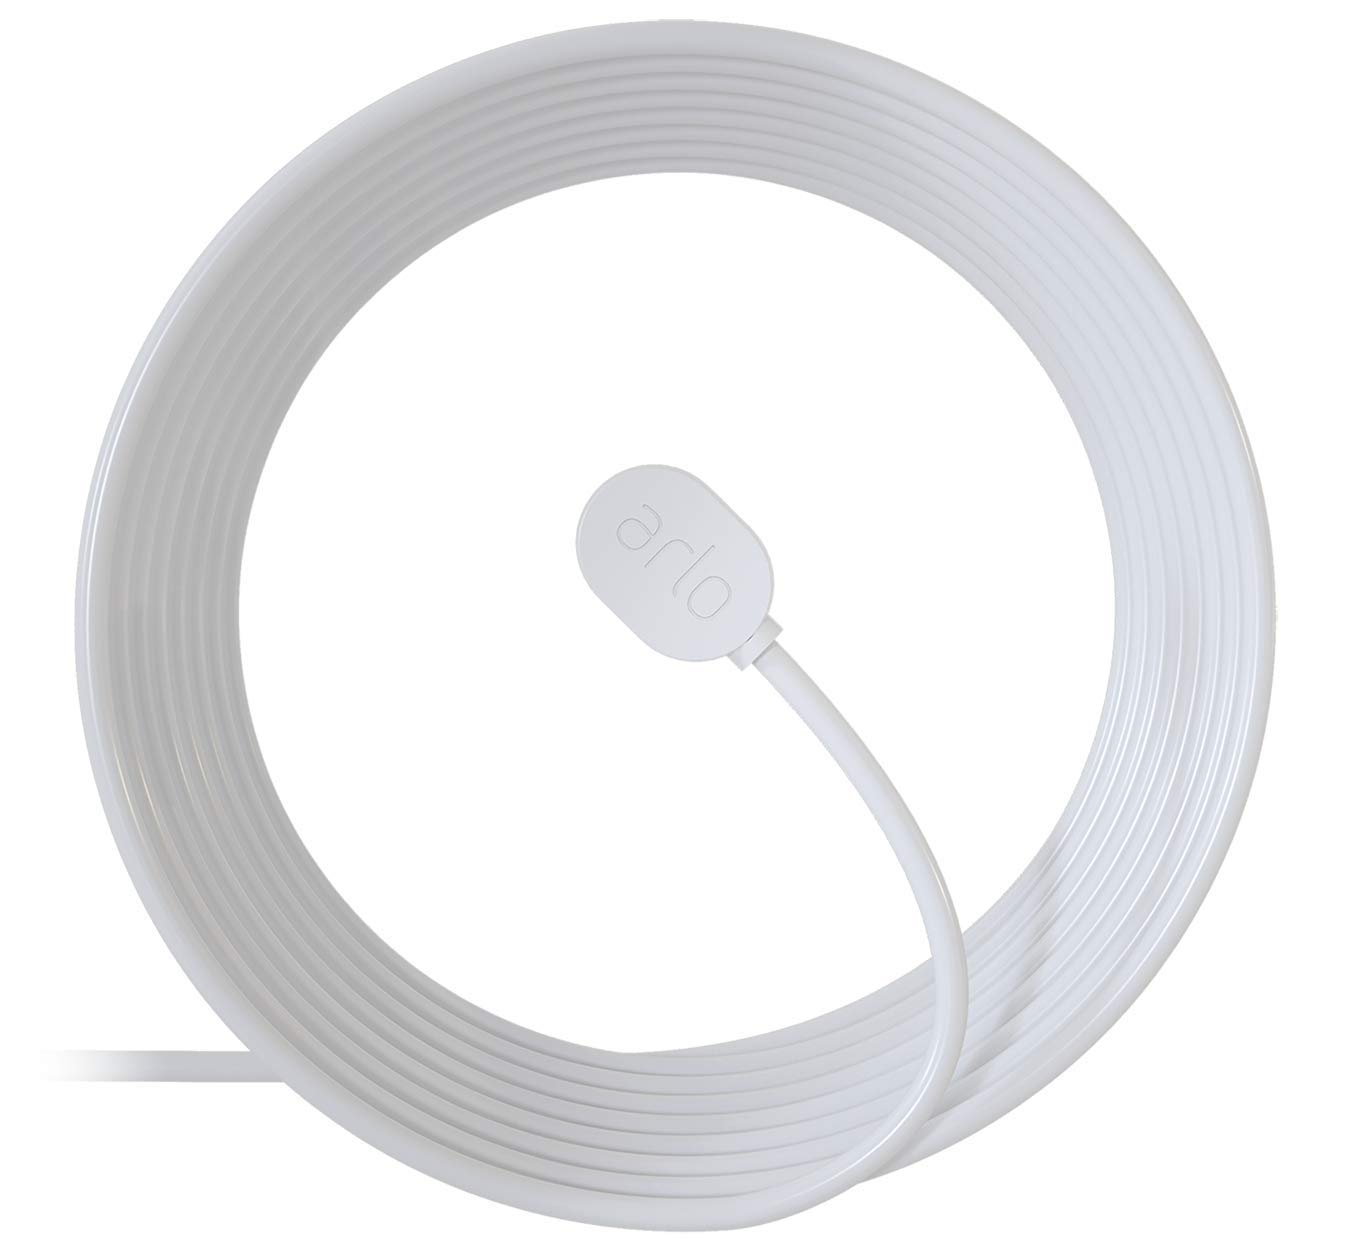 Arlo Accessory - Outdoor Magnetic Charging Cable | 25 ft, Weather Resistant Connector | Compatible with Arlo Ultra Only | (VMA5600C)